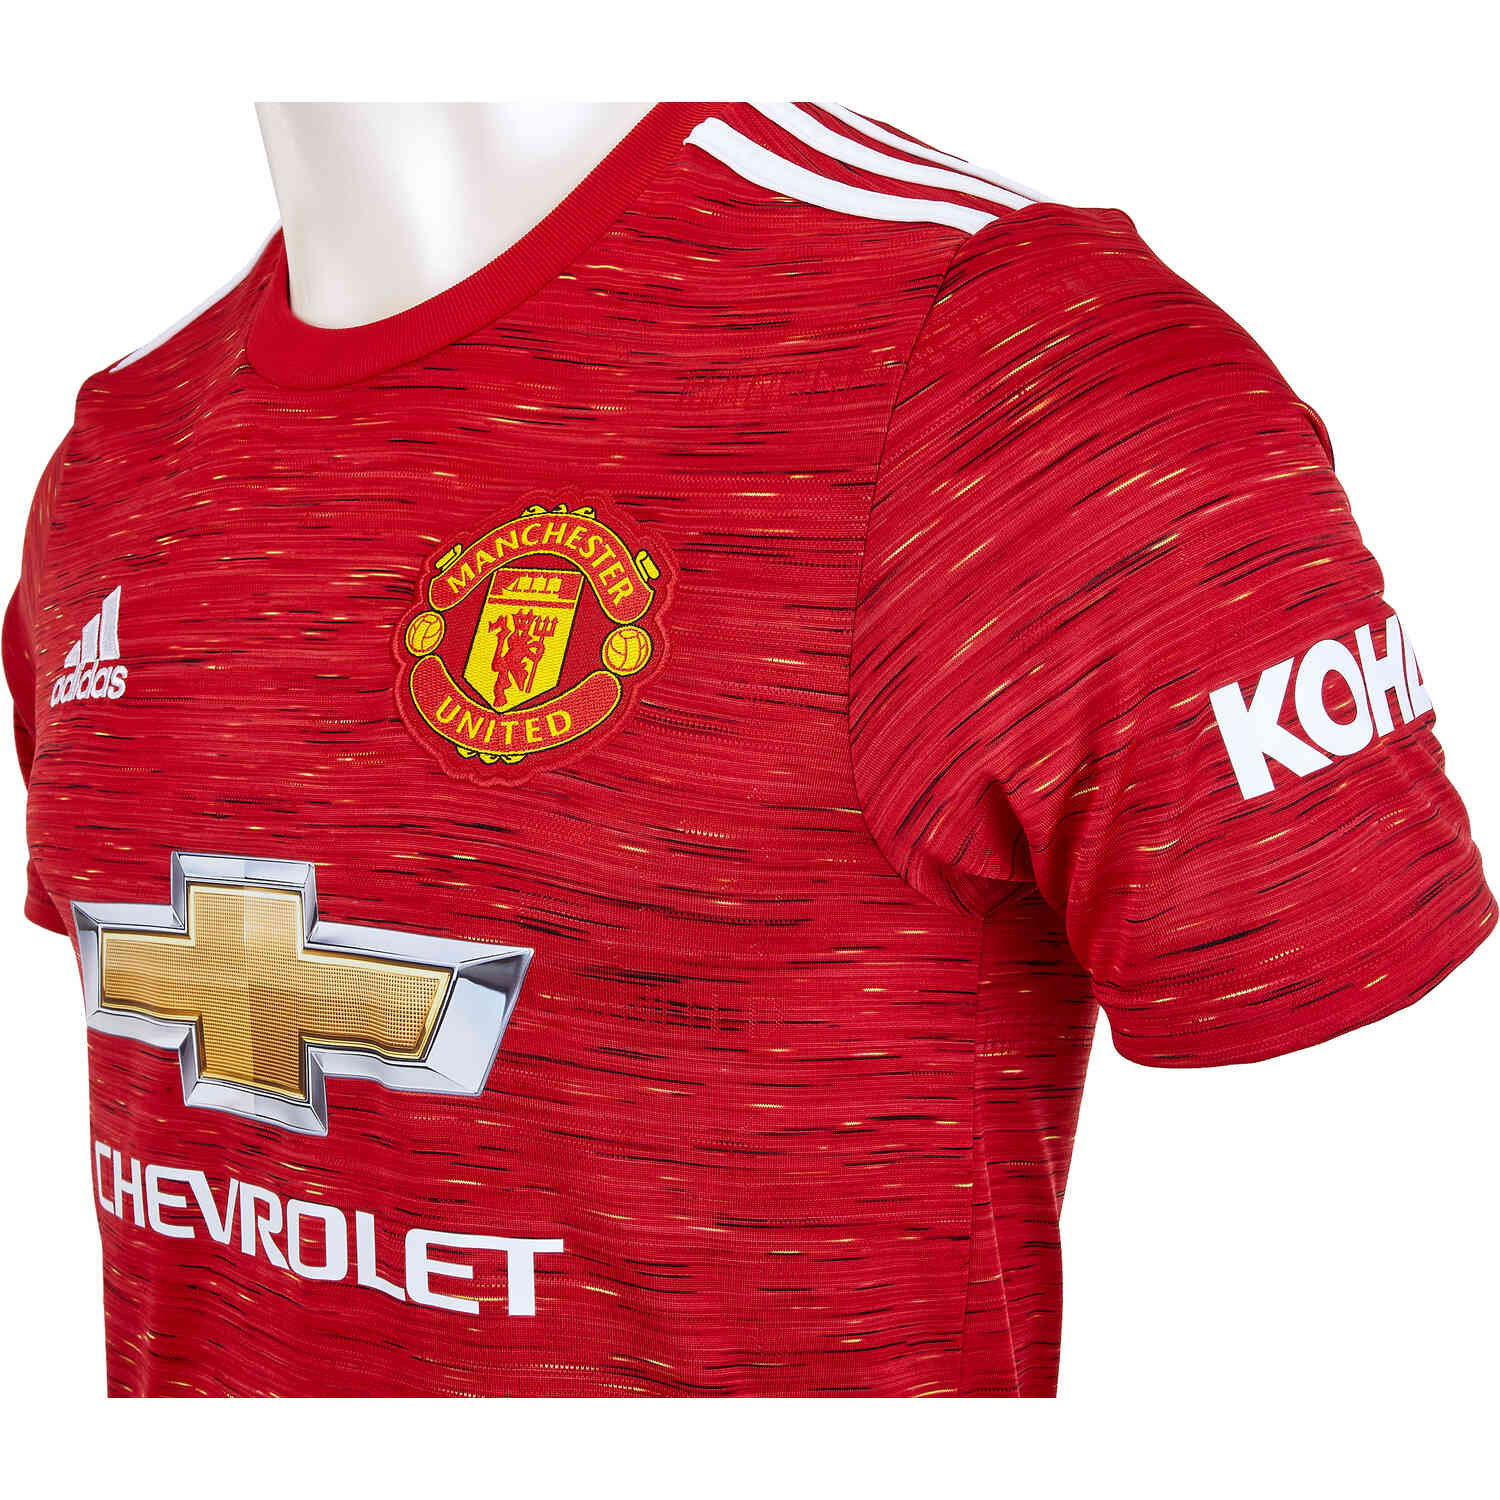 2020/21 Kids adidas Manchester United Home Jersey - Soccer Master